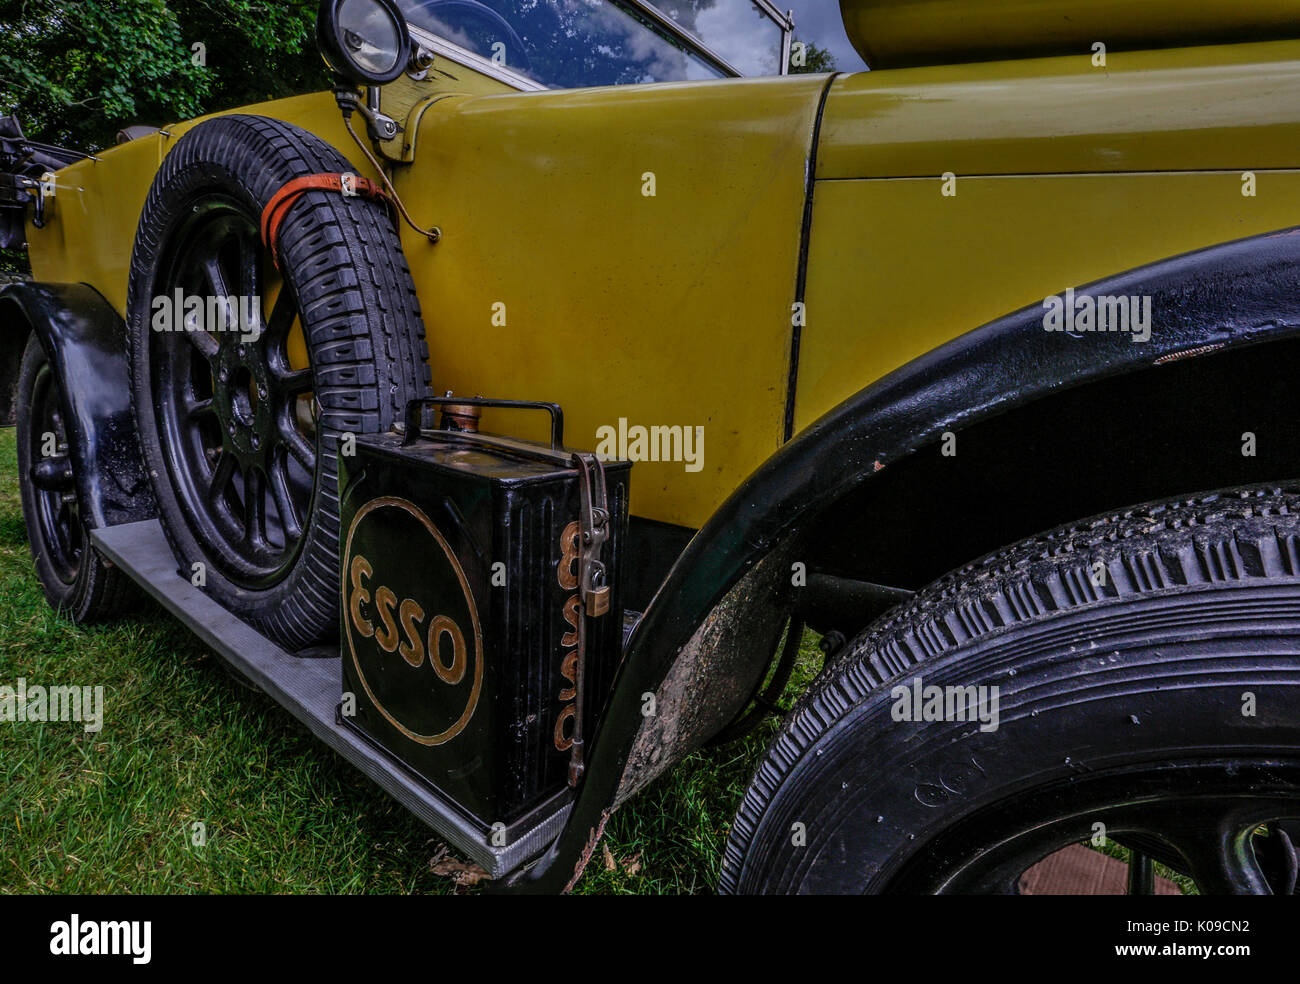 Old Number Plates Stock Photos & Old Number Plates Stock Images - Alamy